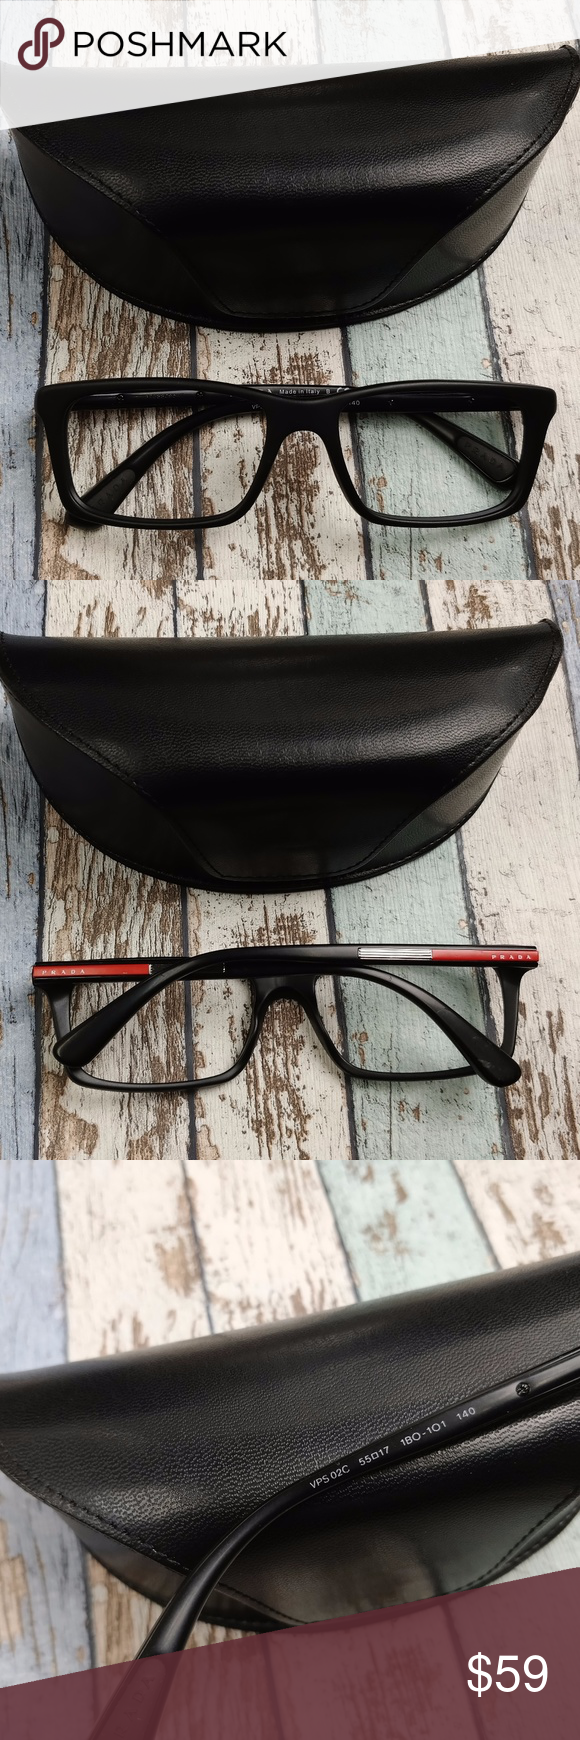 951d69f3c7c6 Prada VPS02C Men's Sunglasses /EUG612 Made in: Italy Comes without lenses  Frame Condition: